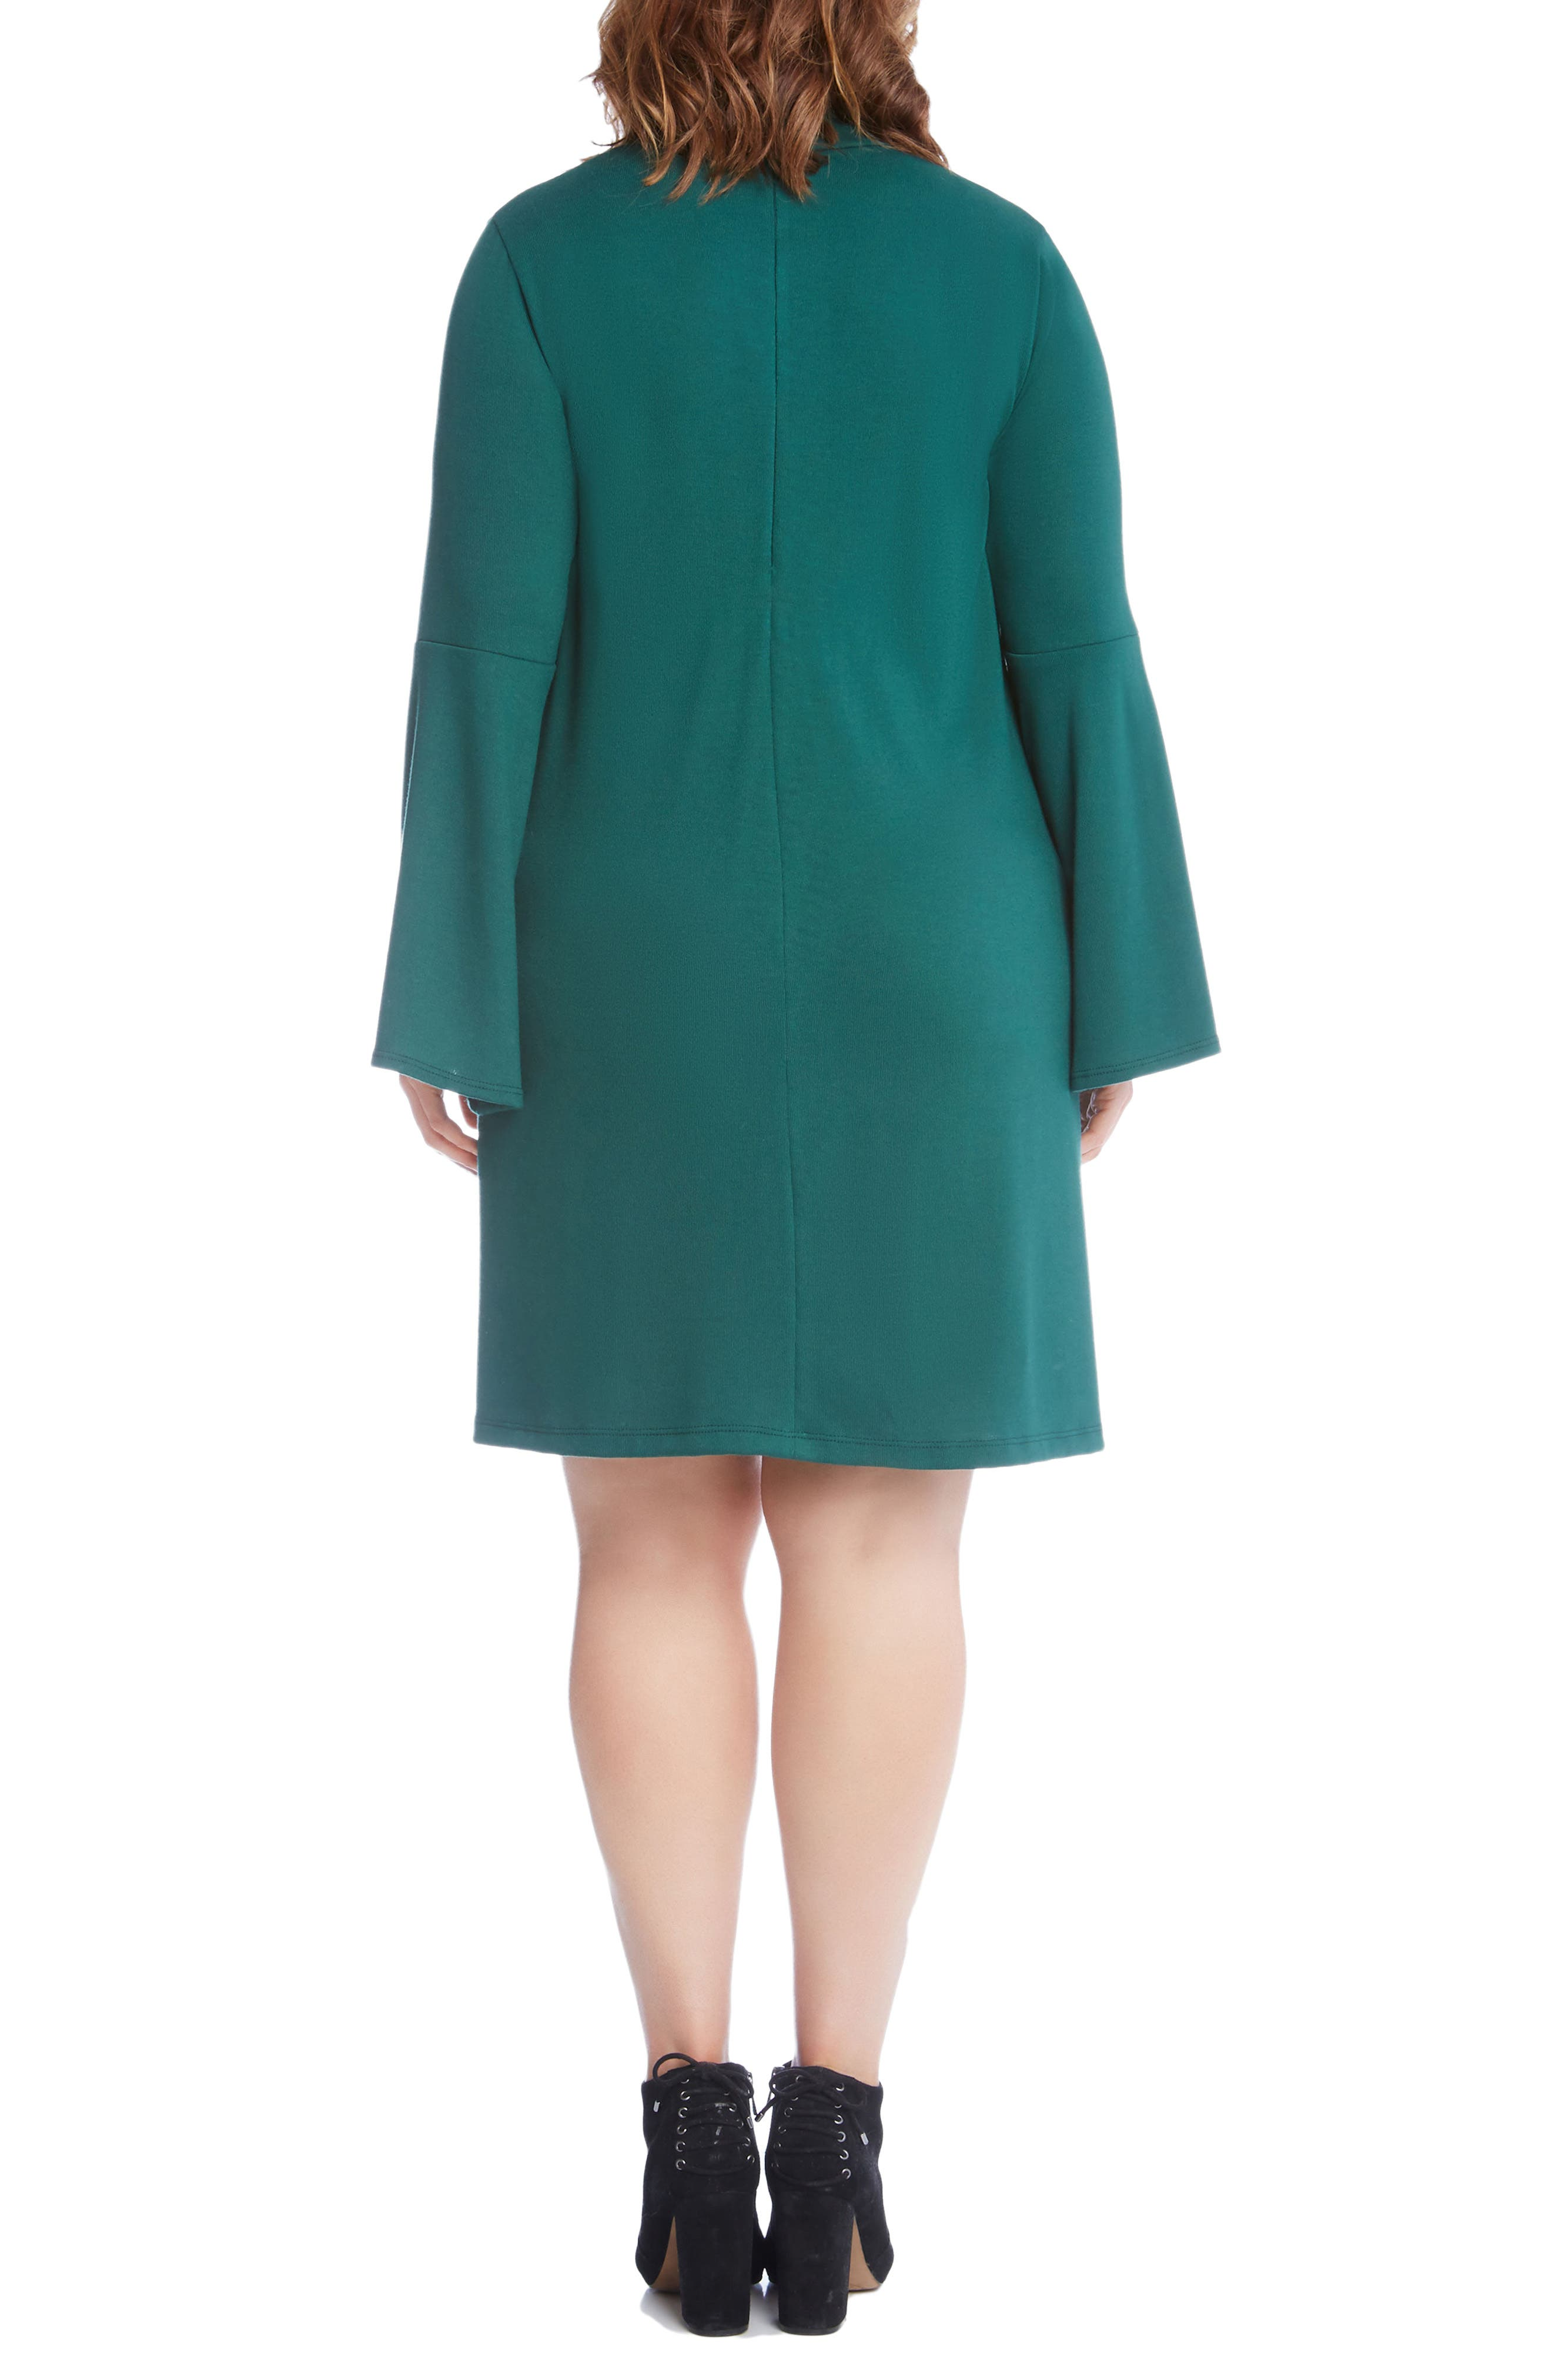 Taylor Choker Neck A-Line Dress,                             Alternate thumbnail 3, color,                             Green